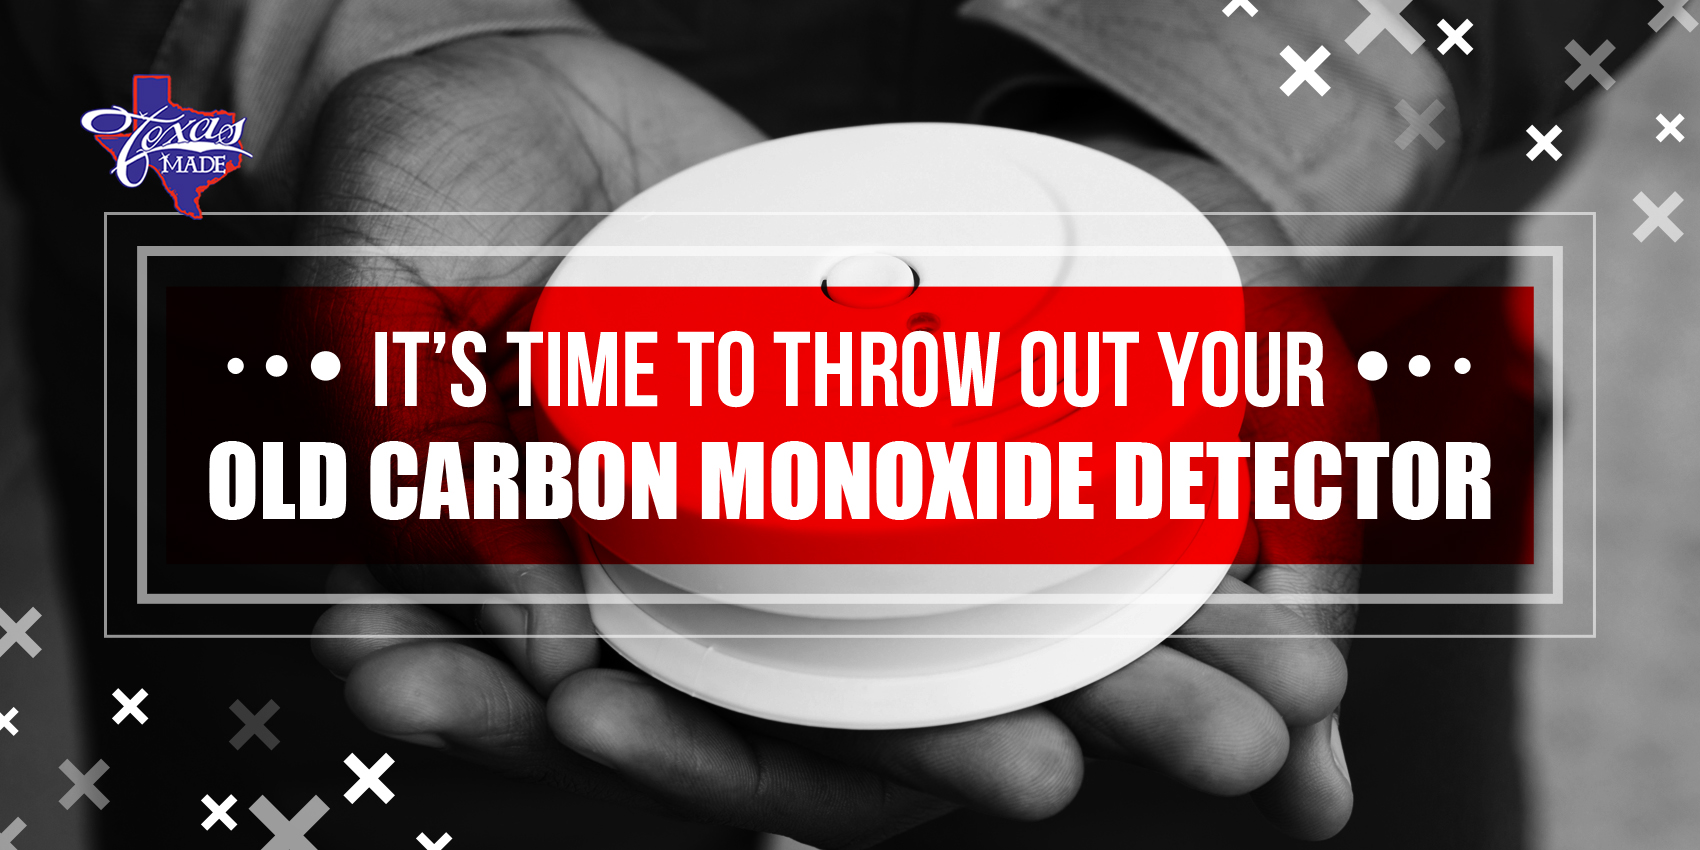 It's Time to Throw out Your Old Carbon Monoxide Detector